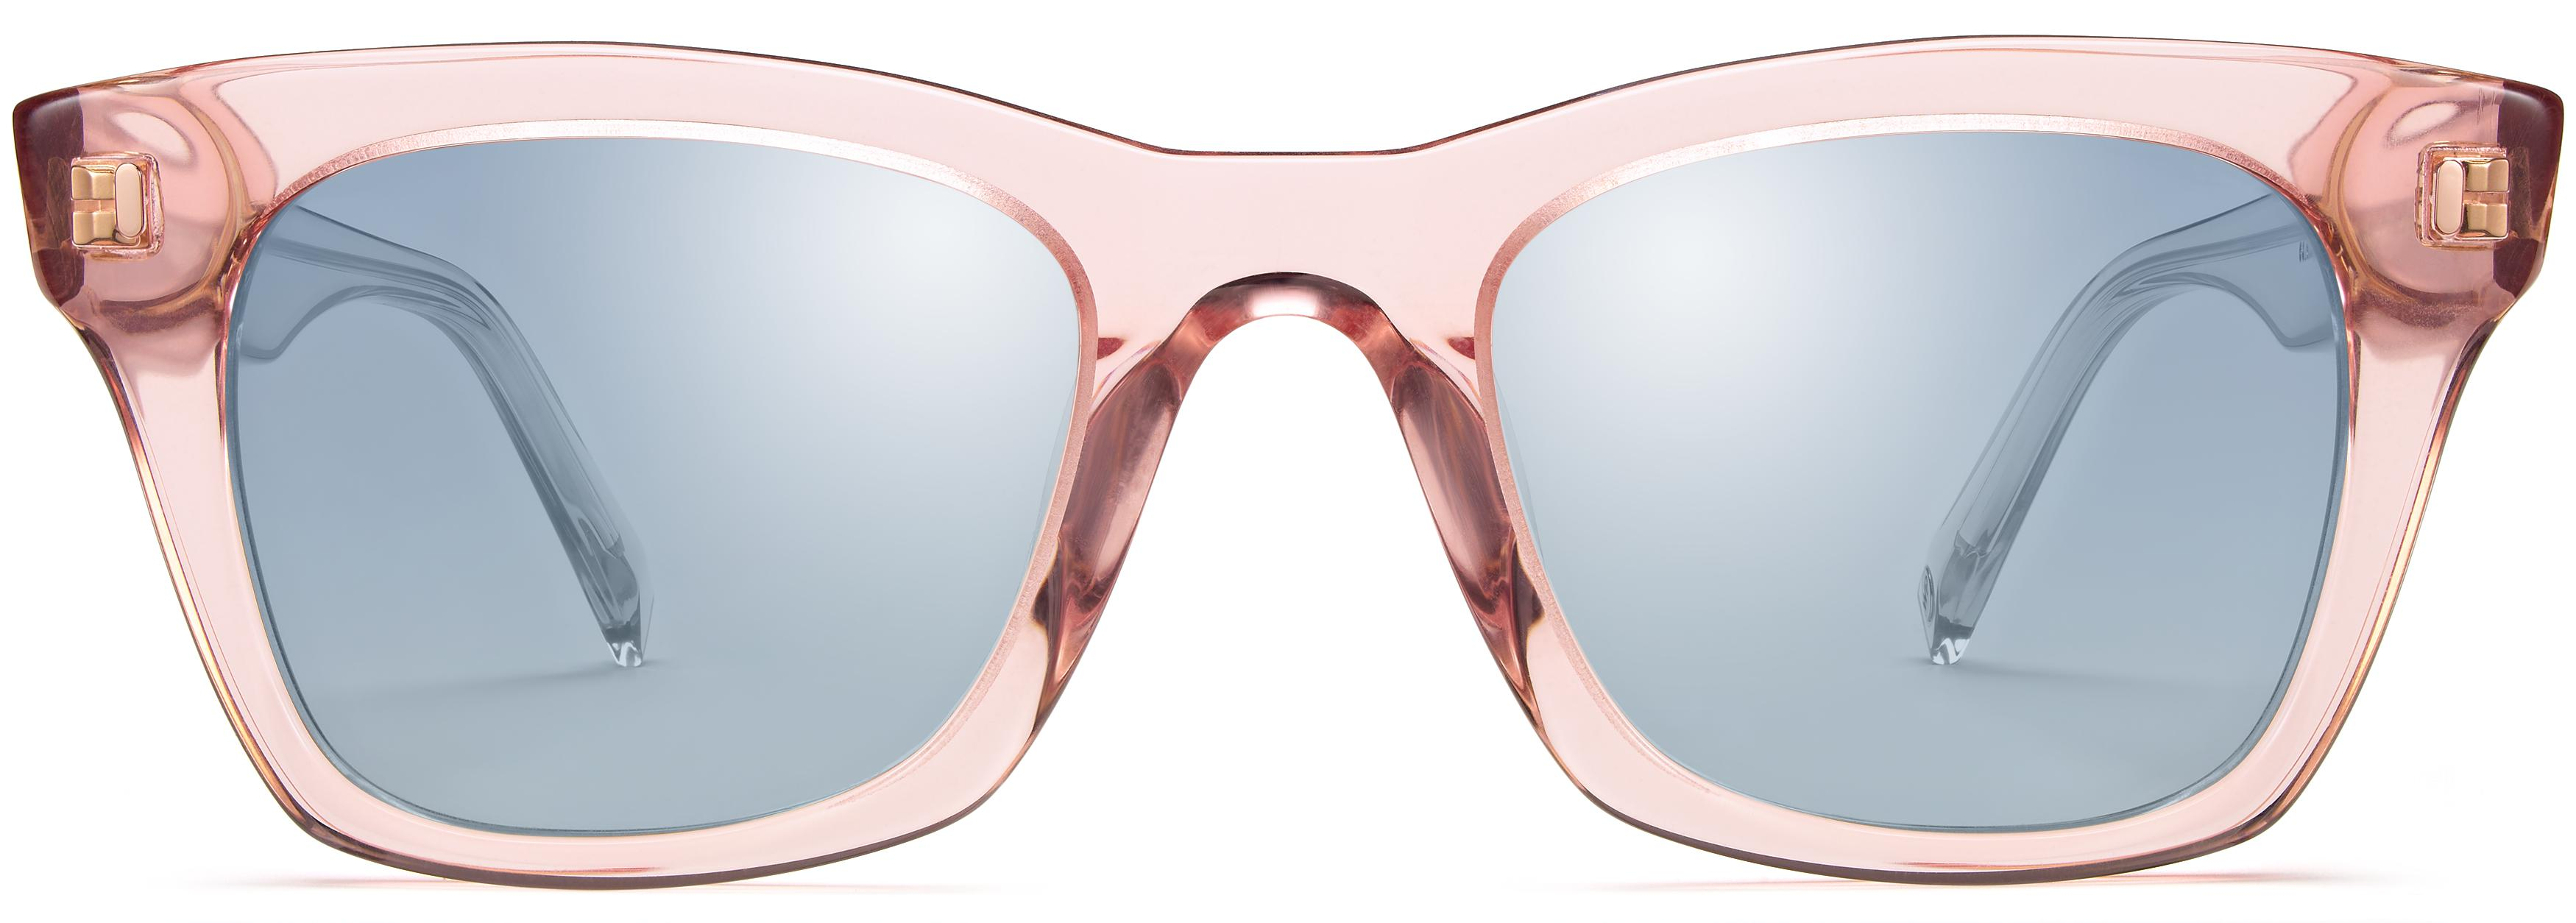 Harris frames in Rose Crystal